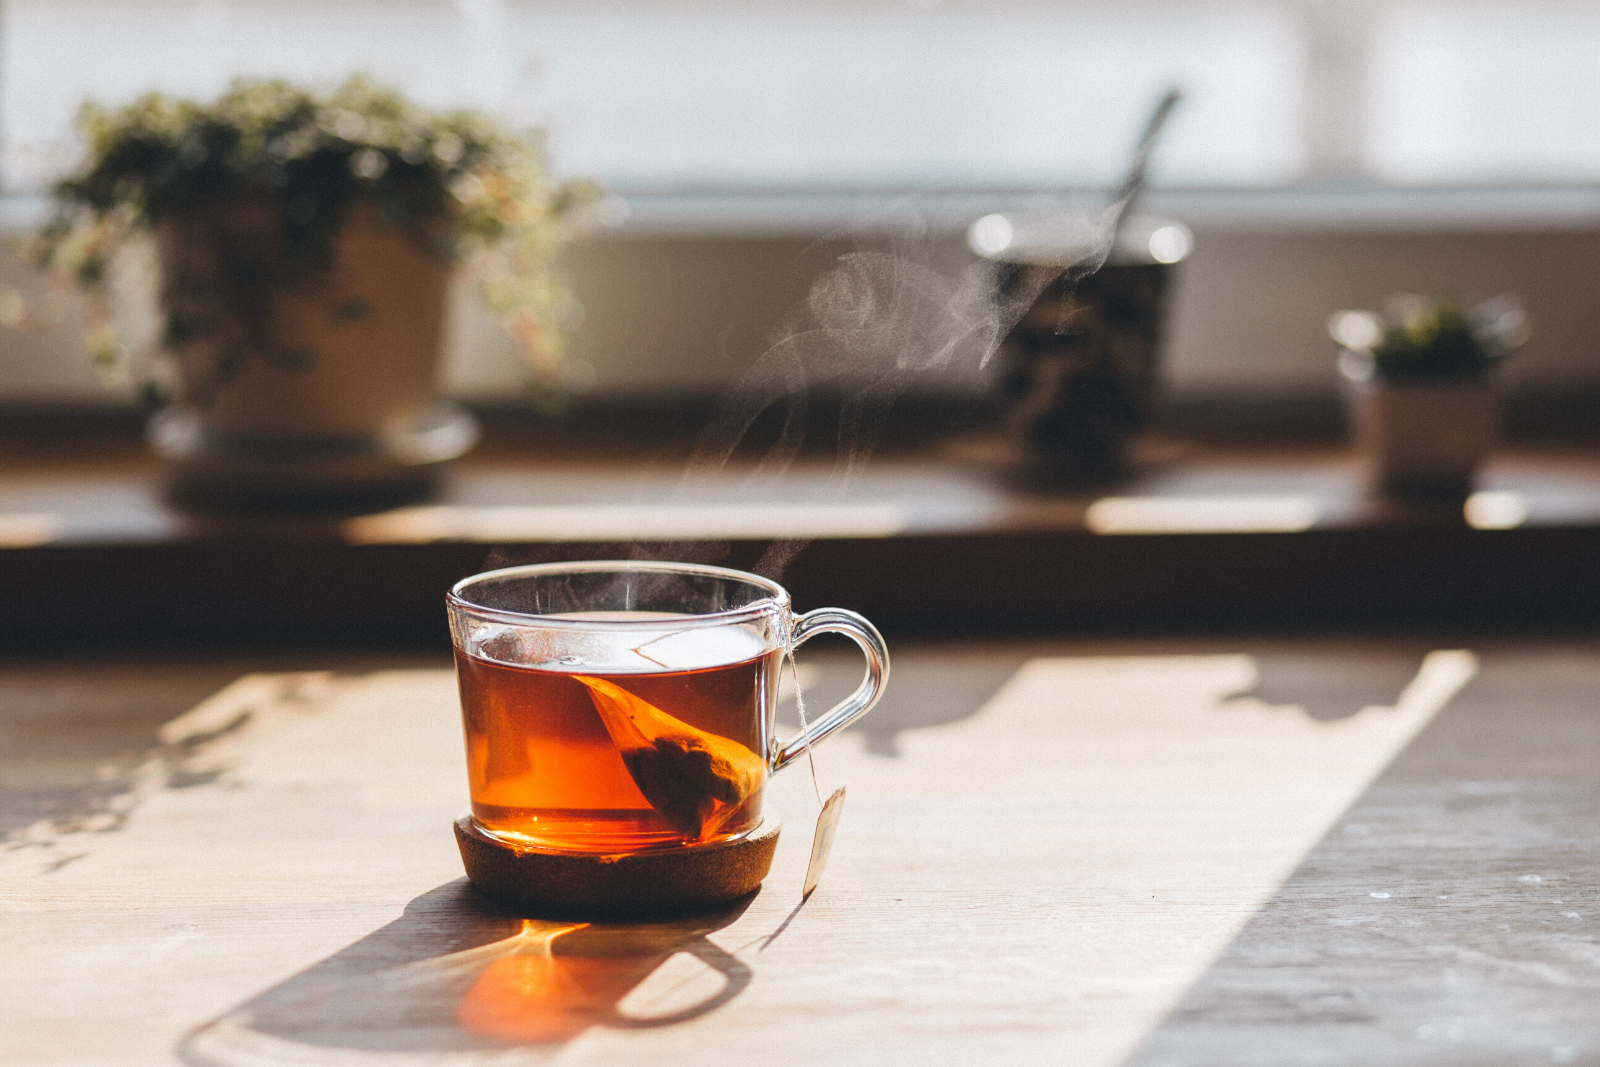 Tea | 10 Underrated Effects Of Drinking Tea